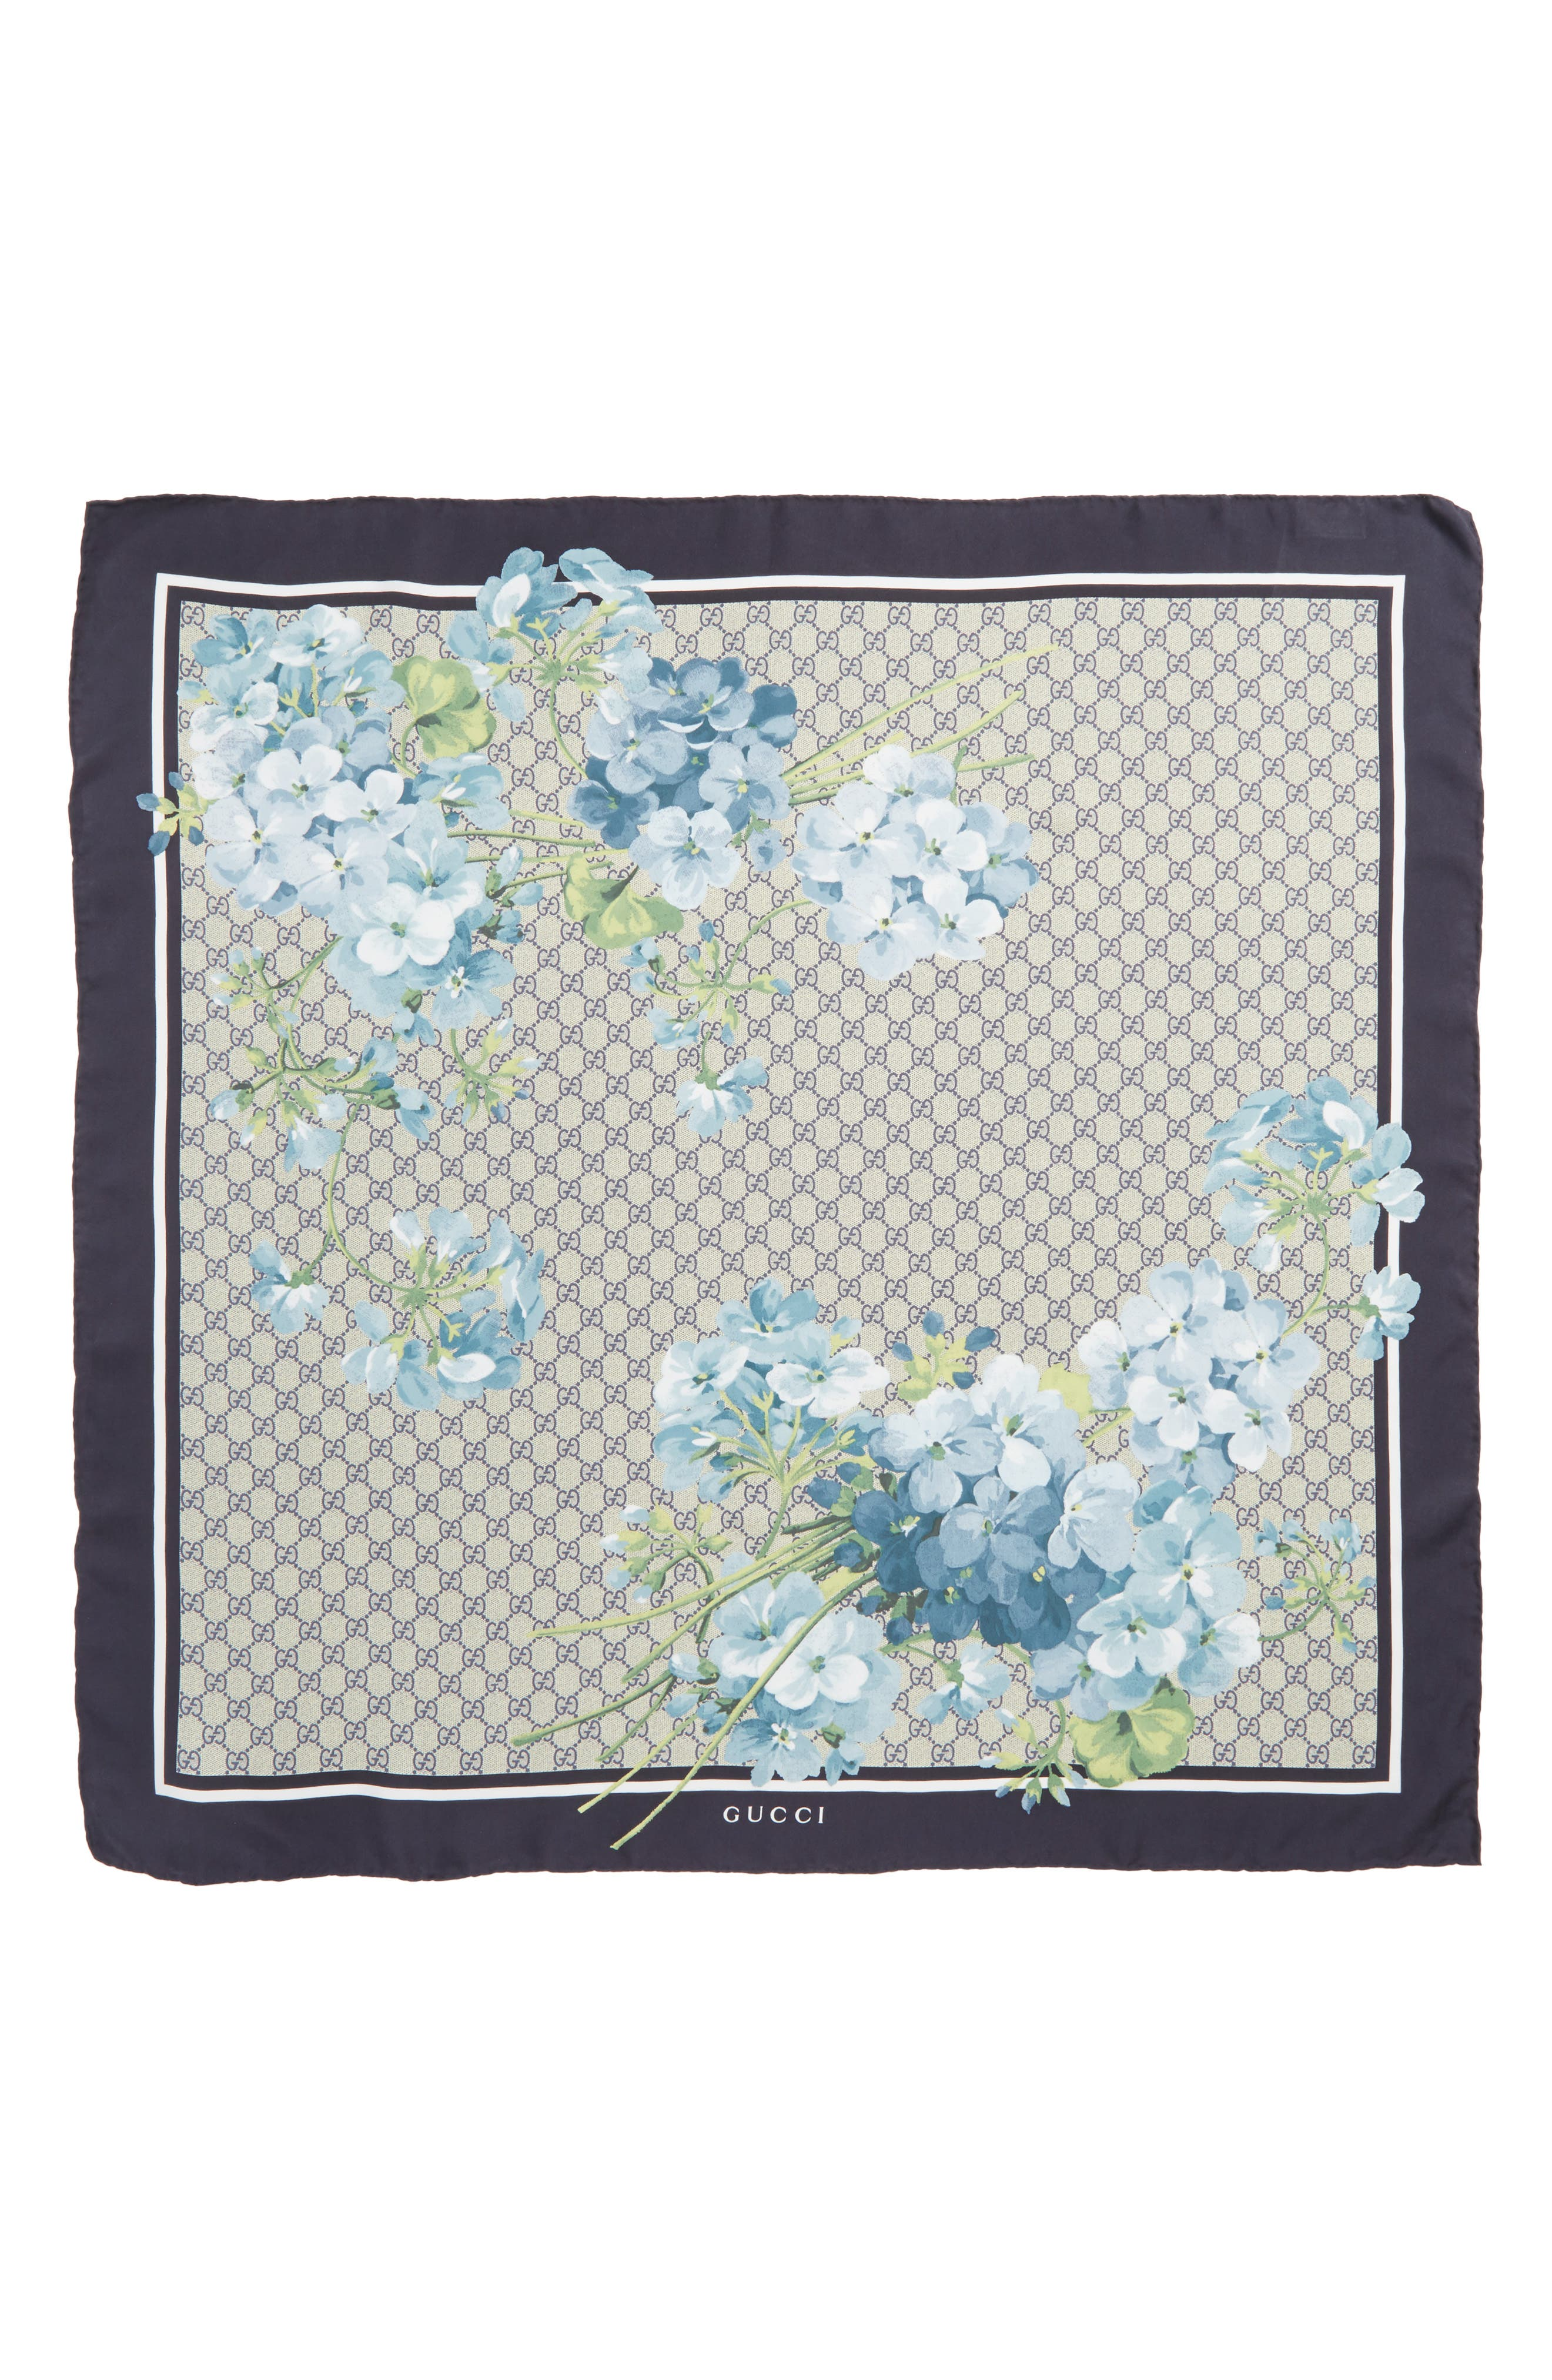 GG Blooms Foulard Scarf,                             Alternate thumbnail 2, color,                             MIDNIGHT BLUE/SKY BLUE